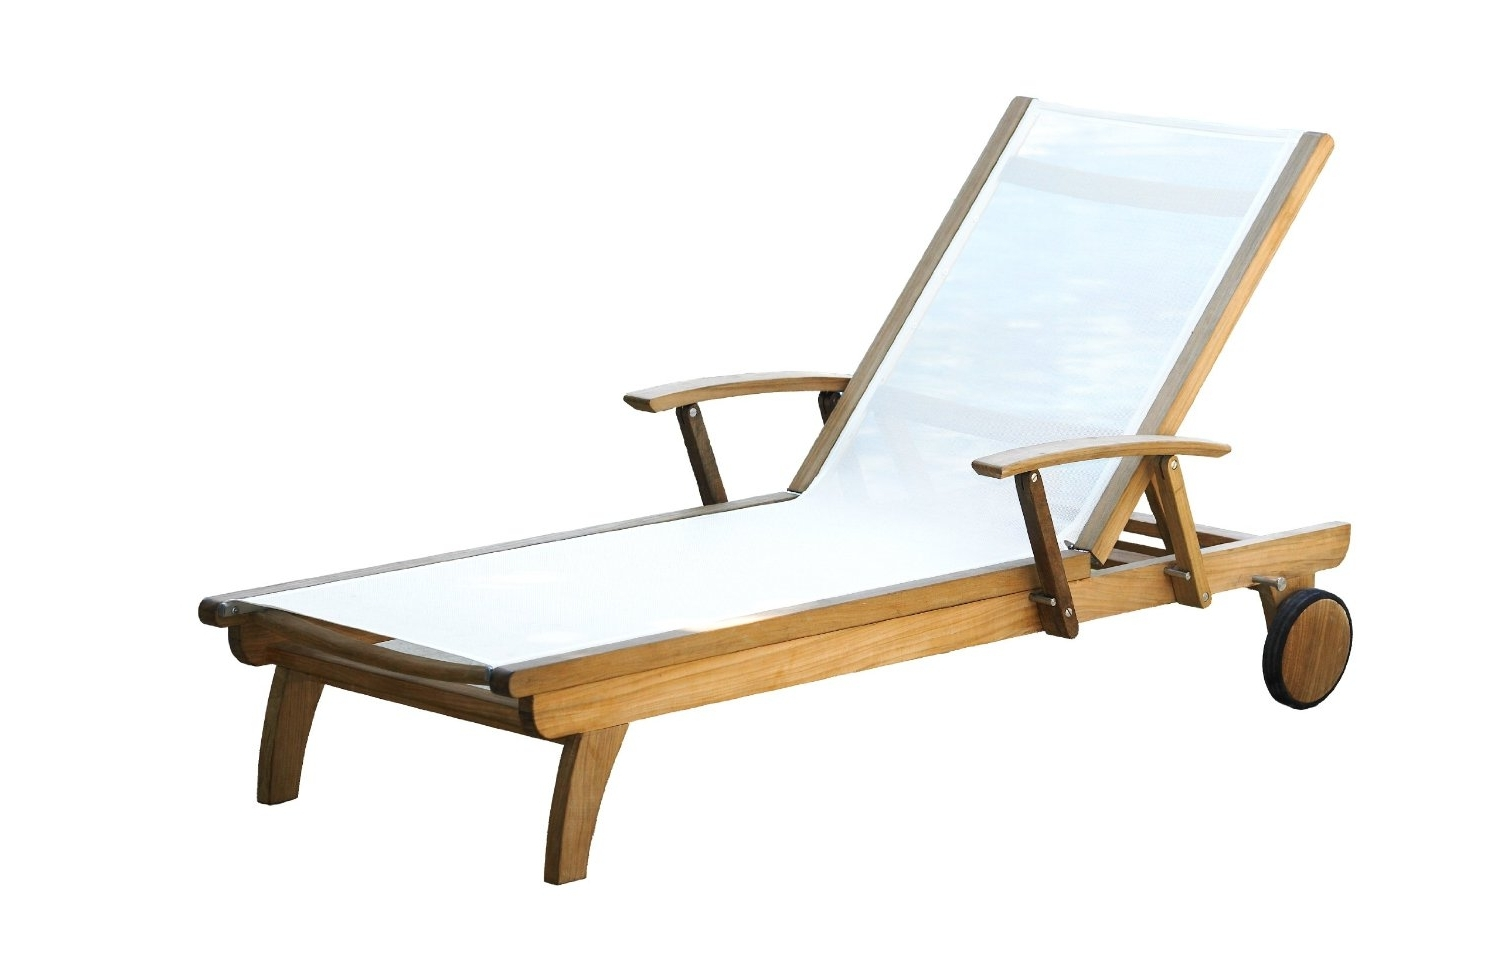 Best And Newest Teak Chaise Lounge Chair – Teak Patio Furniture World Within Hardwood Chaise Lounge Chairs (View 2 of 15)